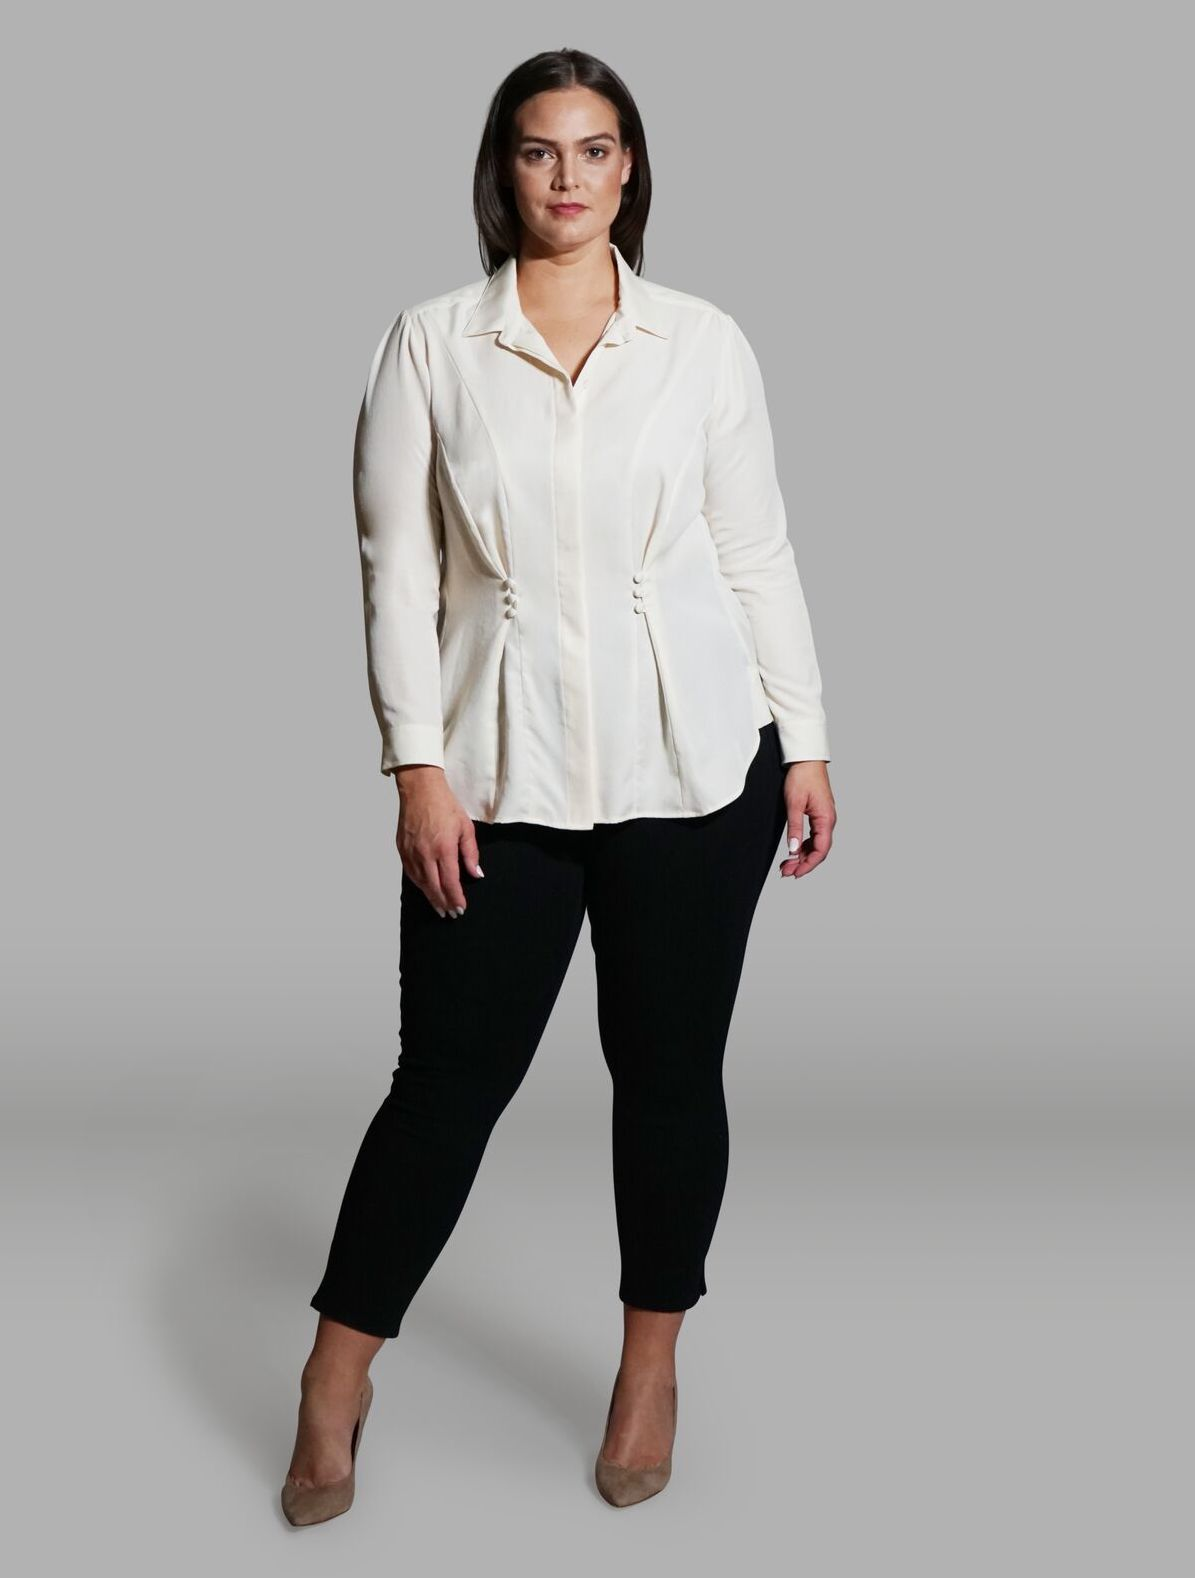 Blouse - ivory - front 2.jpg